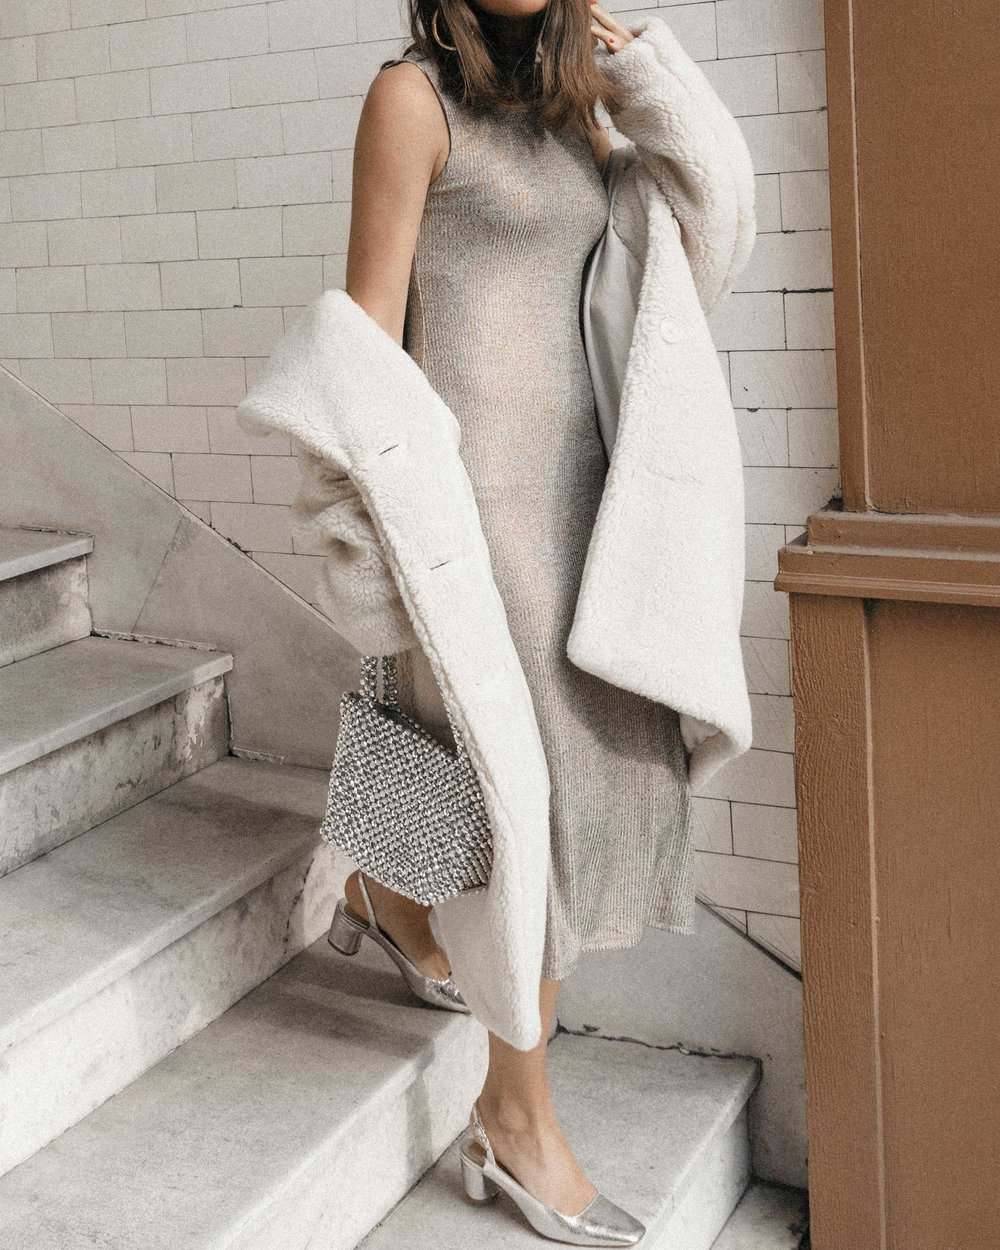 Bcbgeneration Metallic Ribbed Sheath Dress and Faux Shearling Coat holiday outfit14.jpg